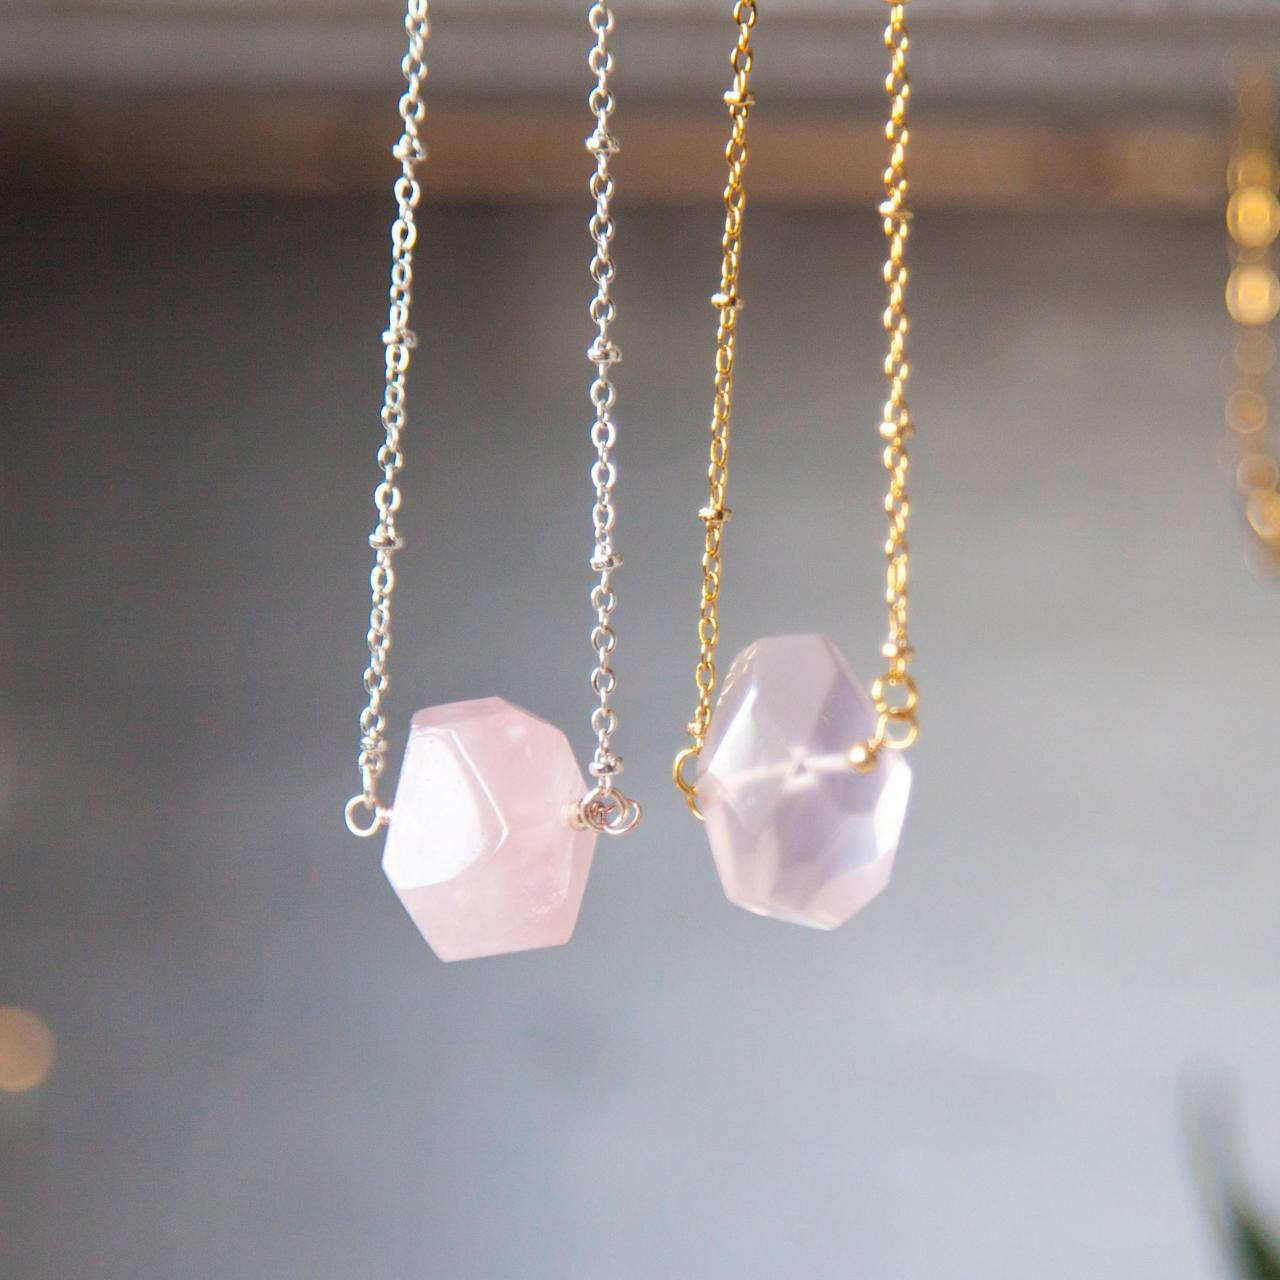 Rose Quartz Necklace Crystal Jewelry